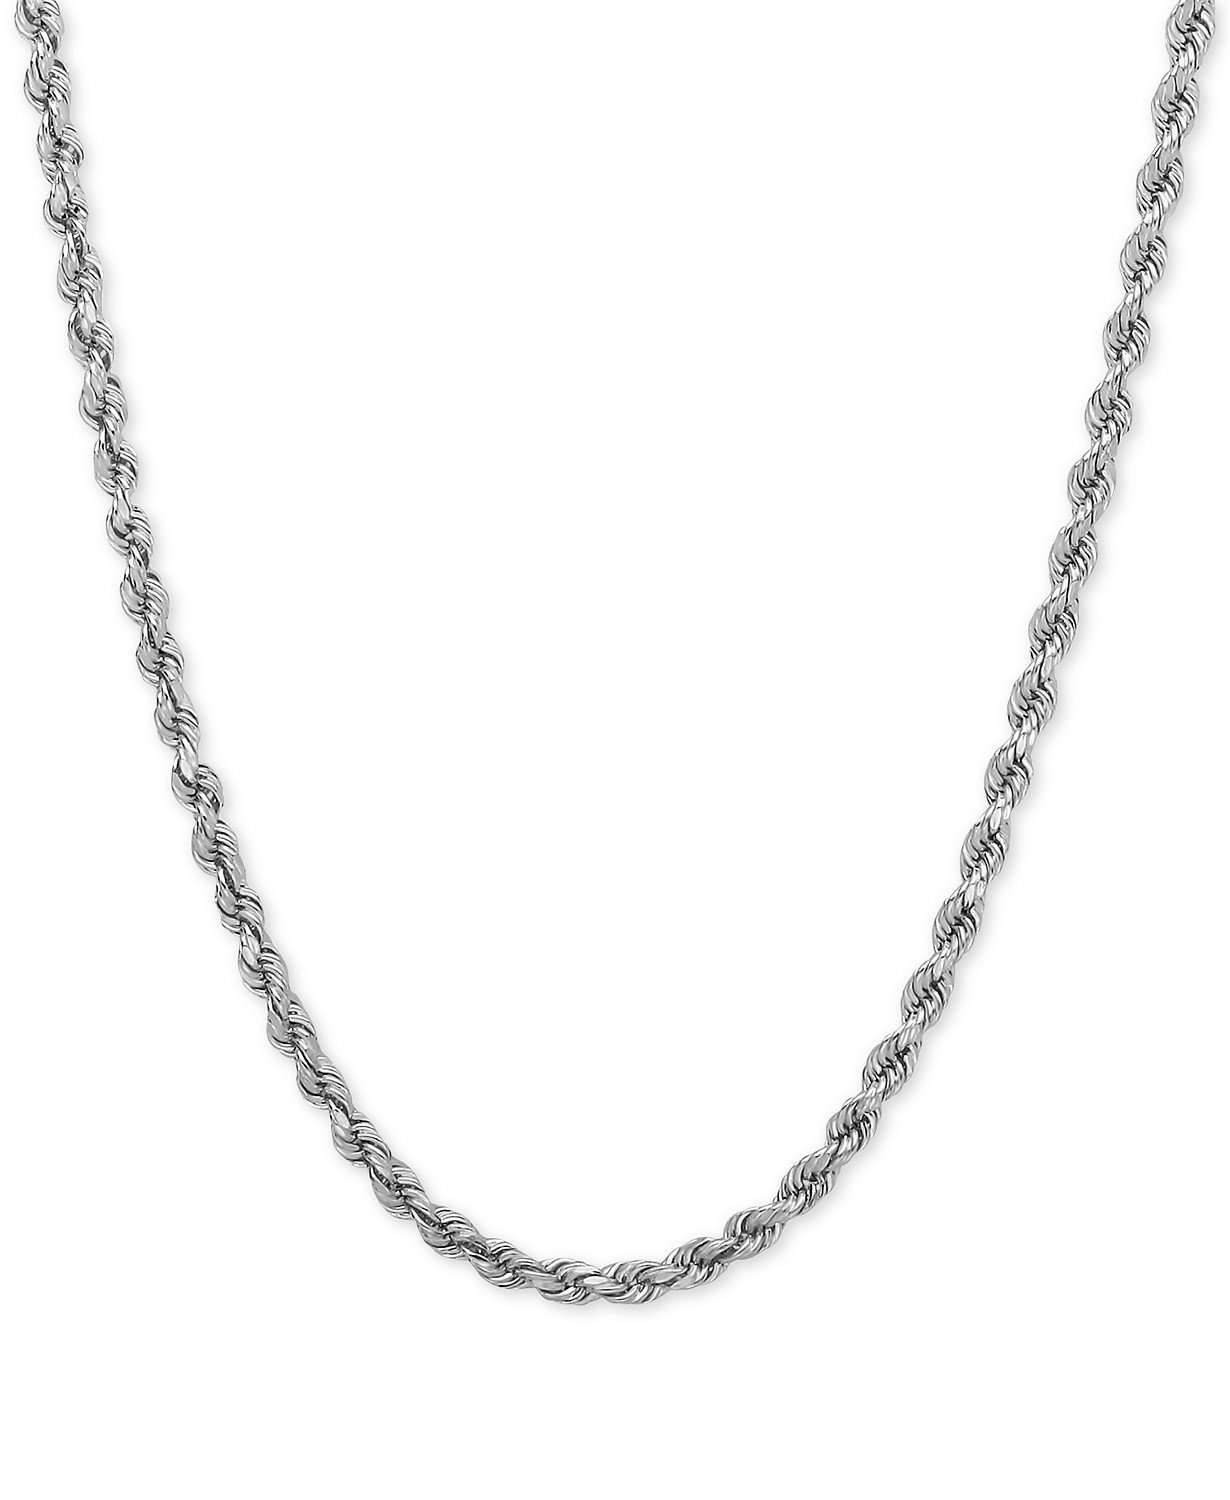 14K Yellow or White Gold 2.00mm Shiny Hollow Rope Chain Necklace for Pendants and Charms with Lobster-Claw Clasp (16'', 18'' or 20 inch)